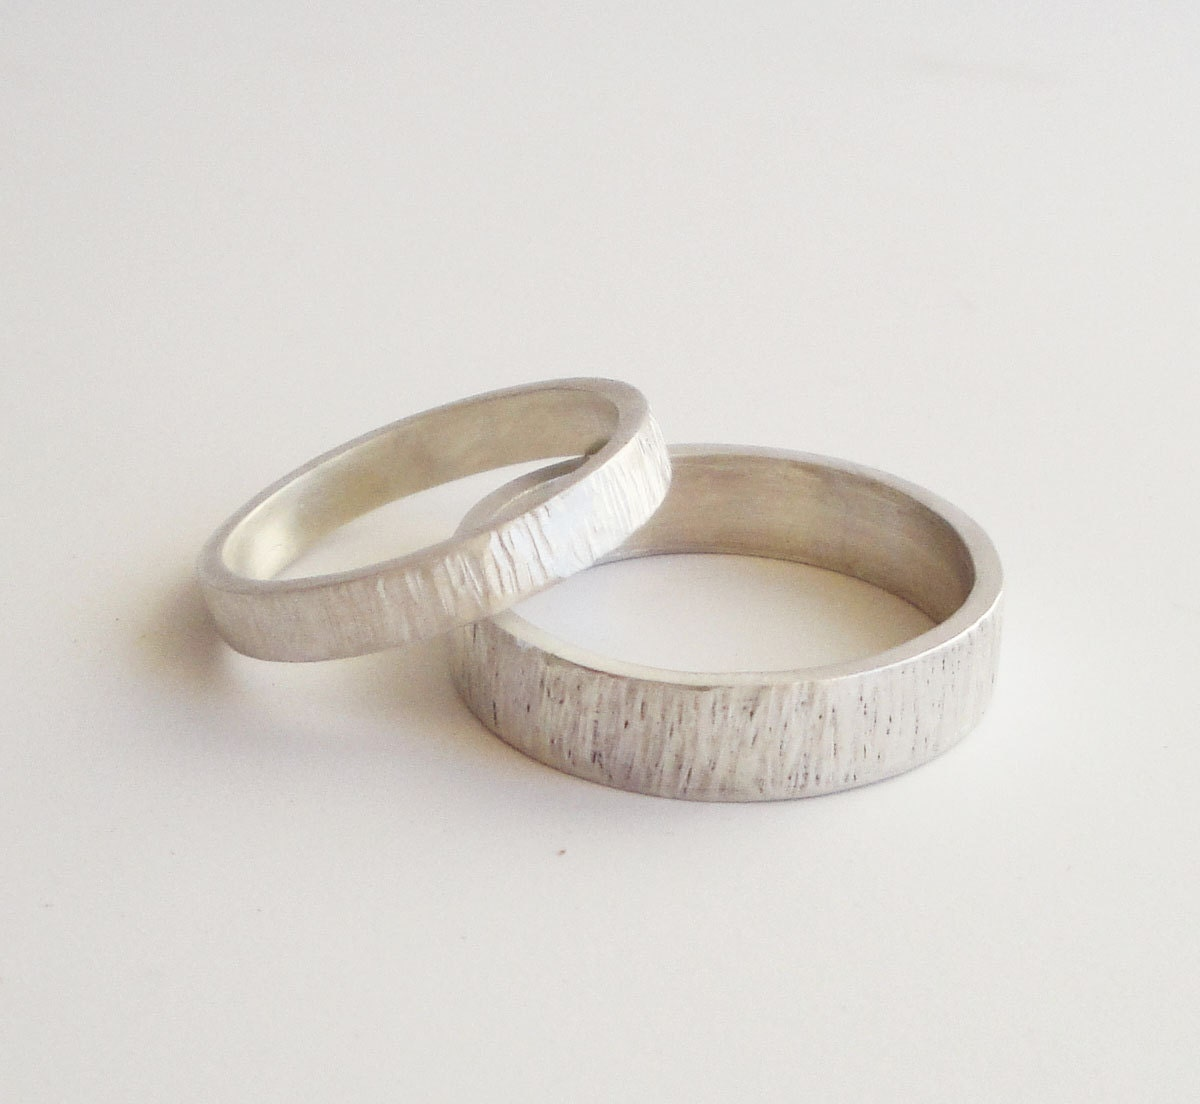 zoom - Handmade Wedding Rings